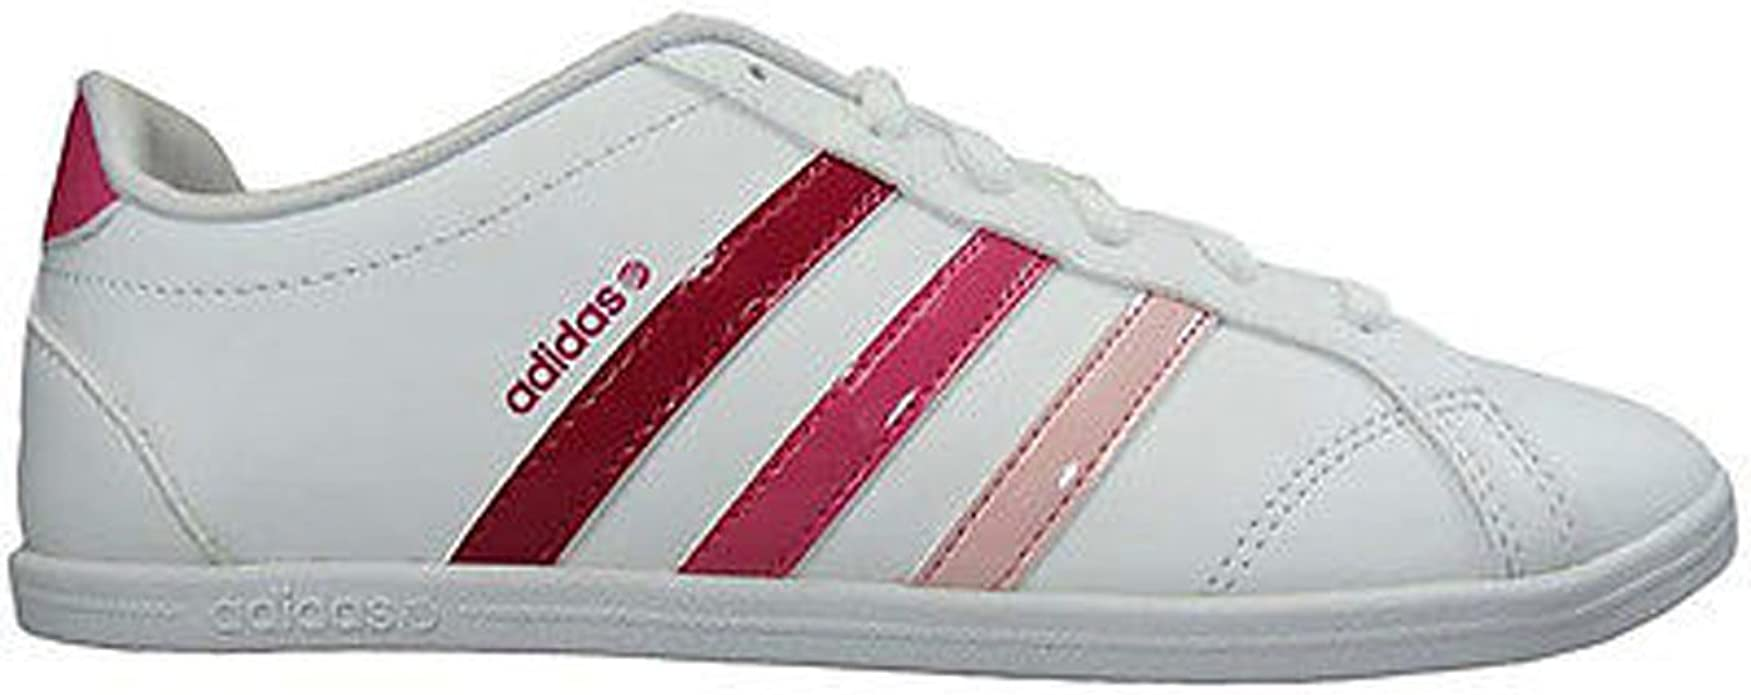 Adidas NEO CONEO QT White Pink F38409